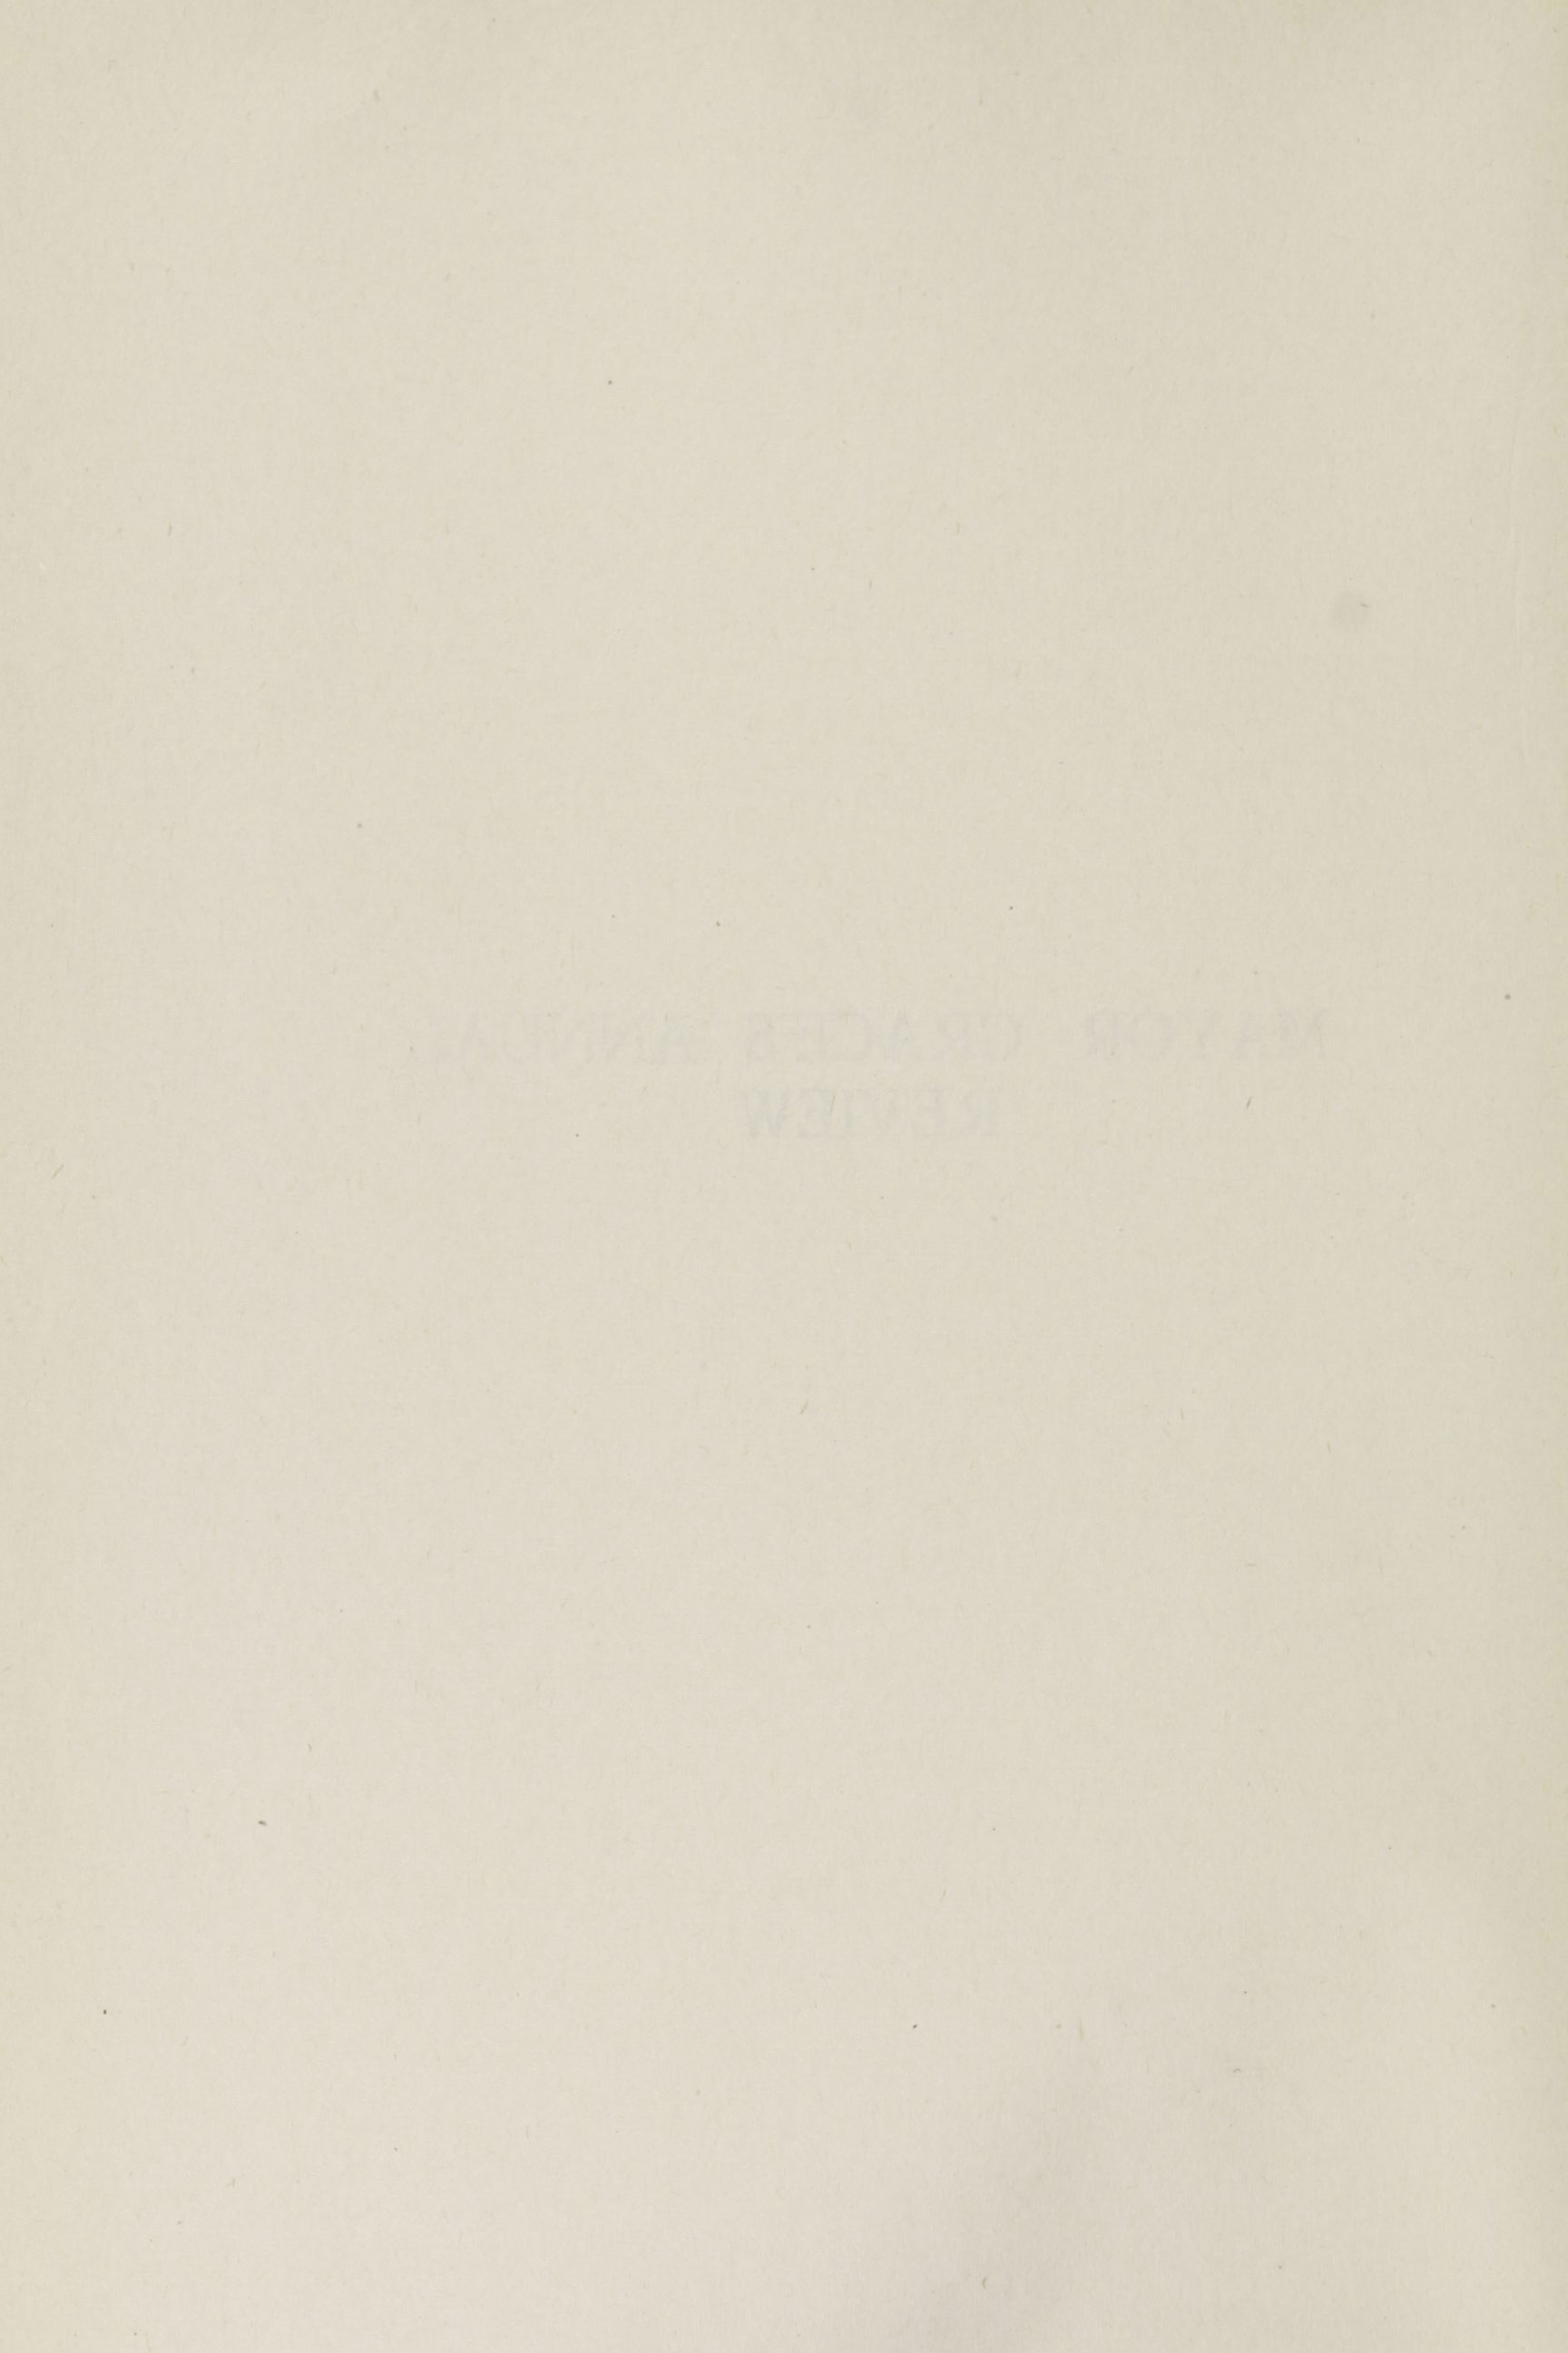 Charleston Yearbook, 1920, blank back of insert